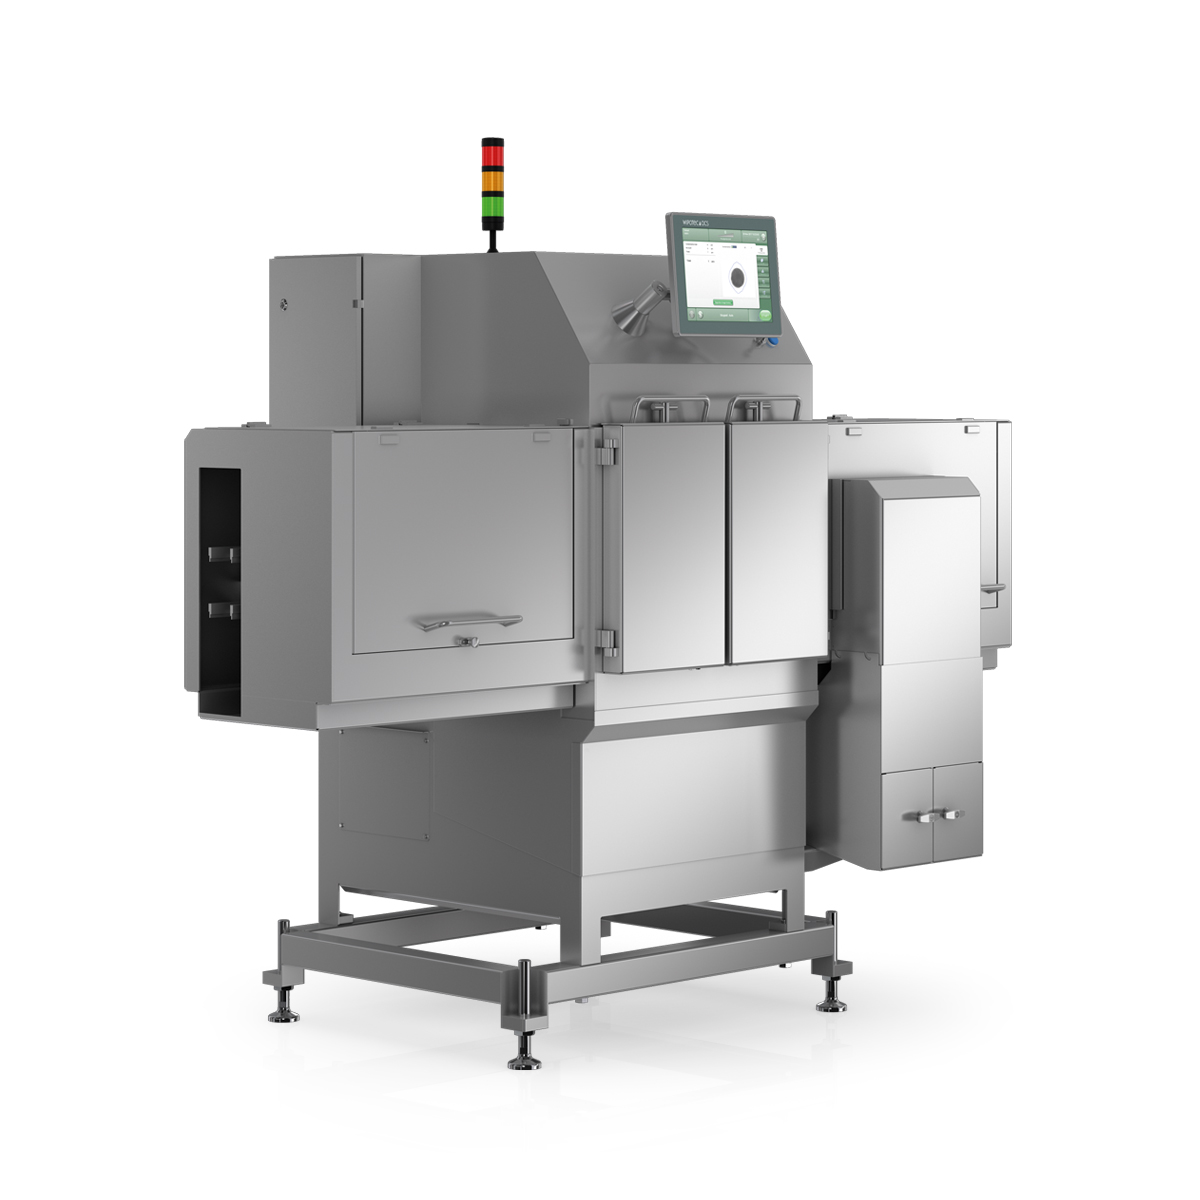 S Series X-ray inspection of standing products